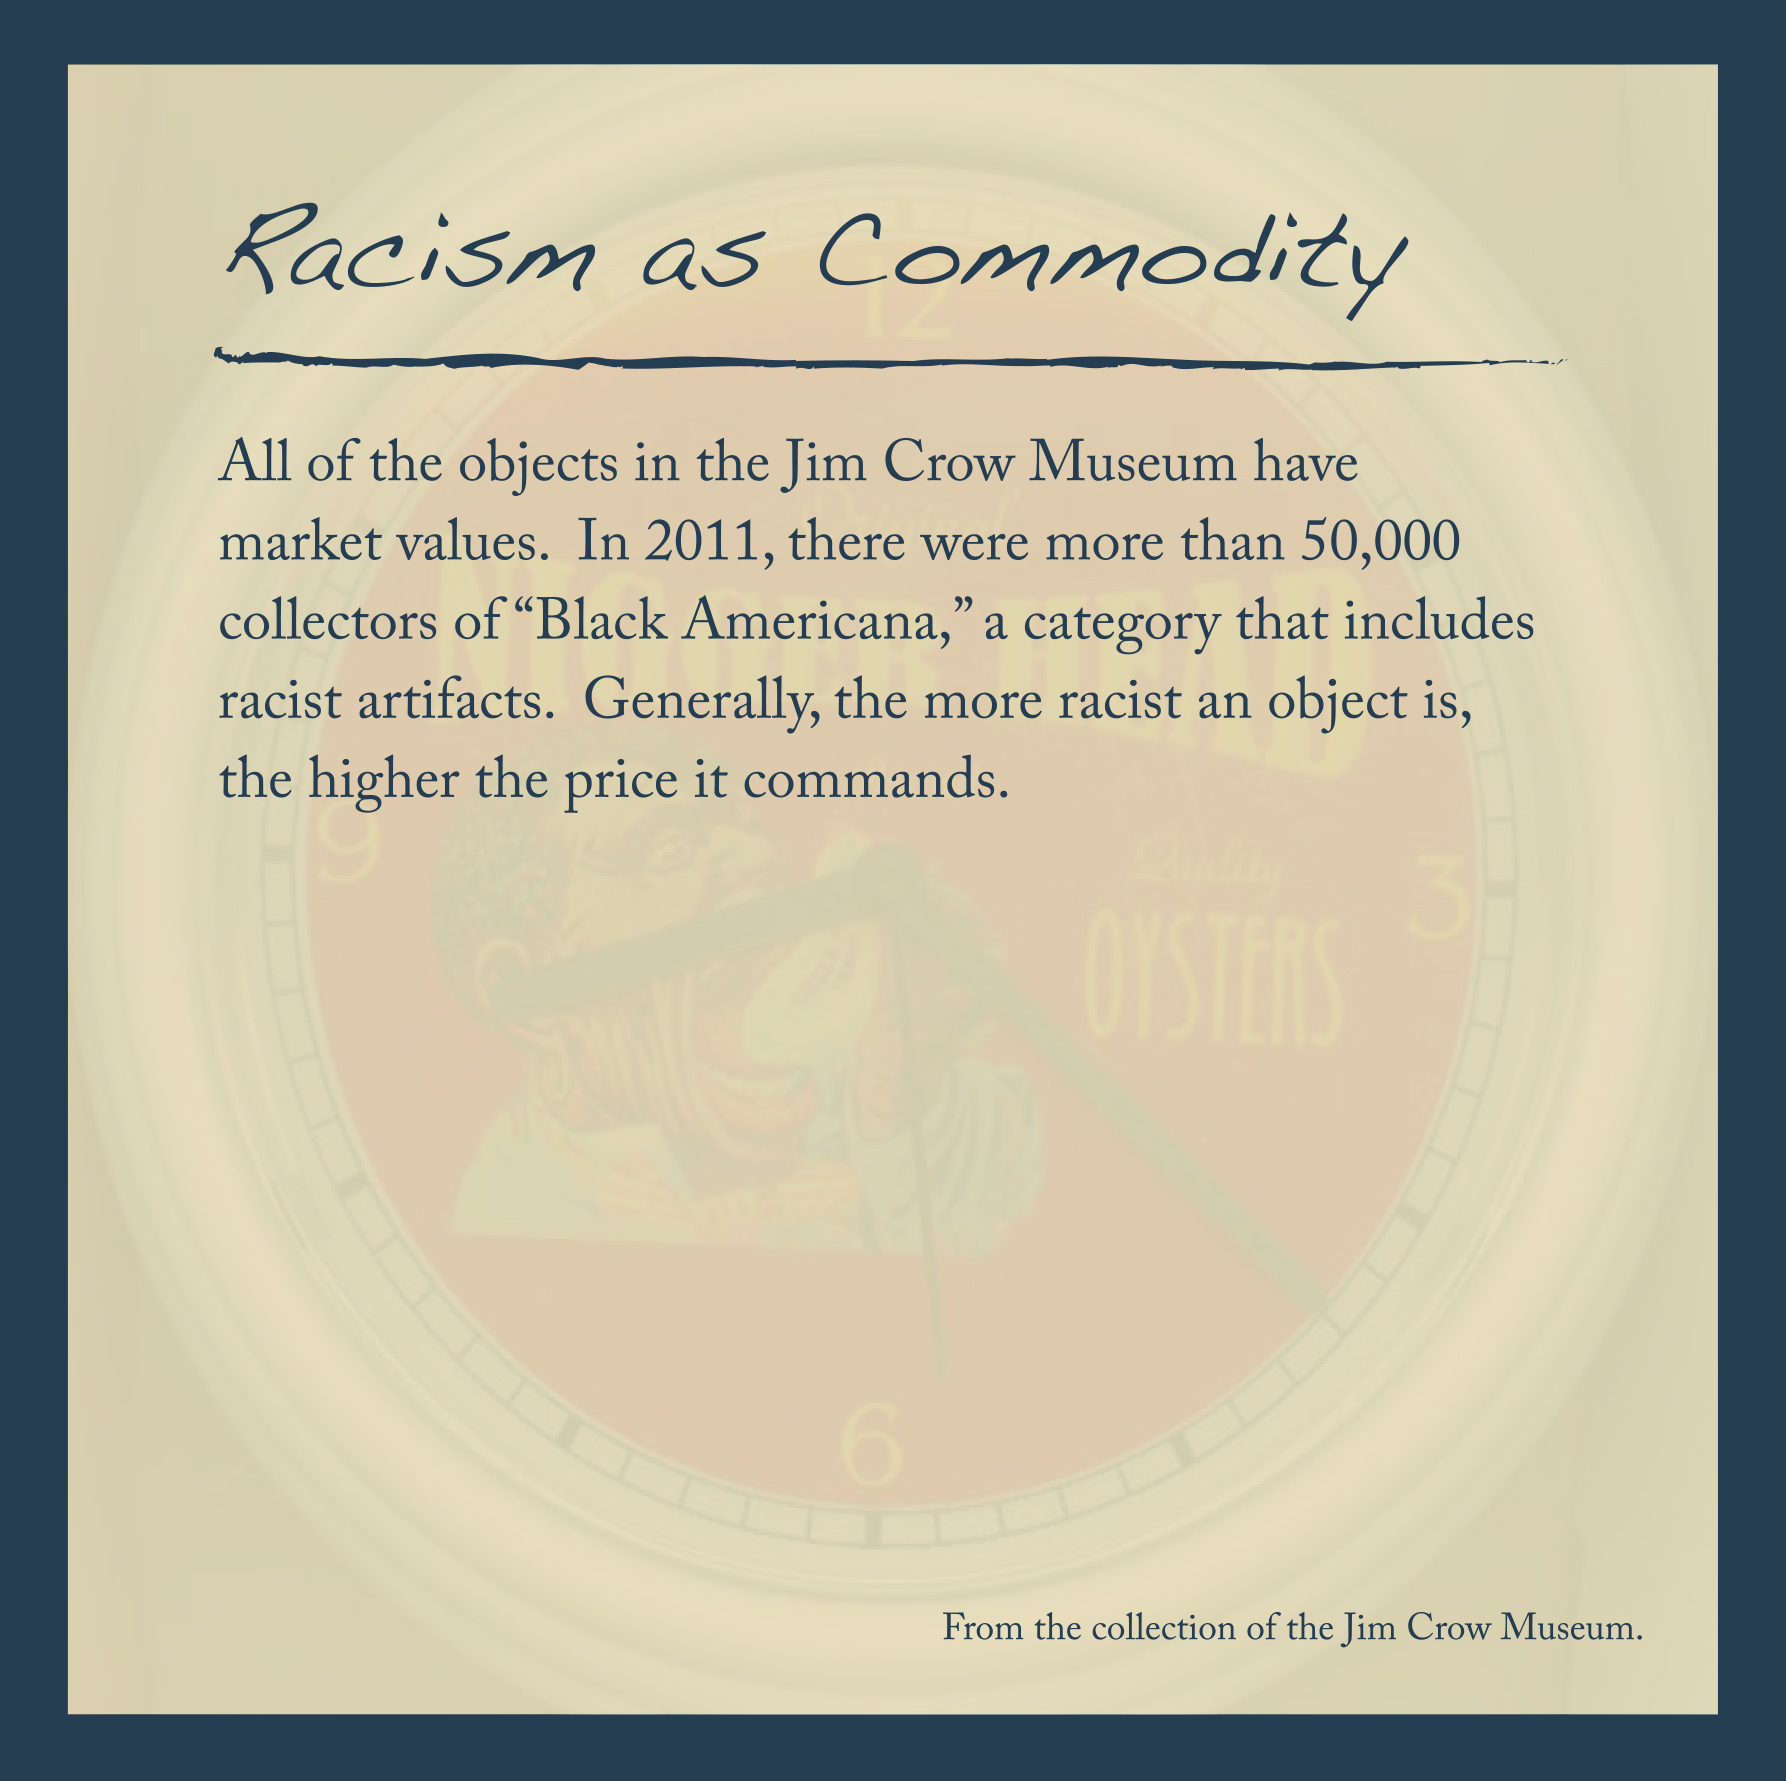 Racism as Commodity.jpg